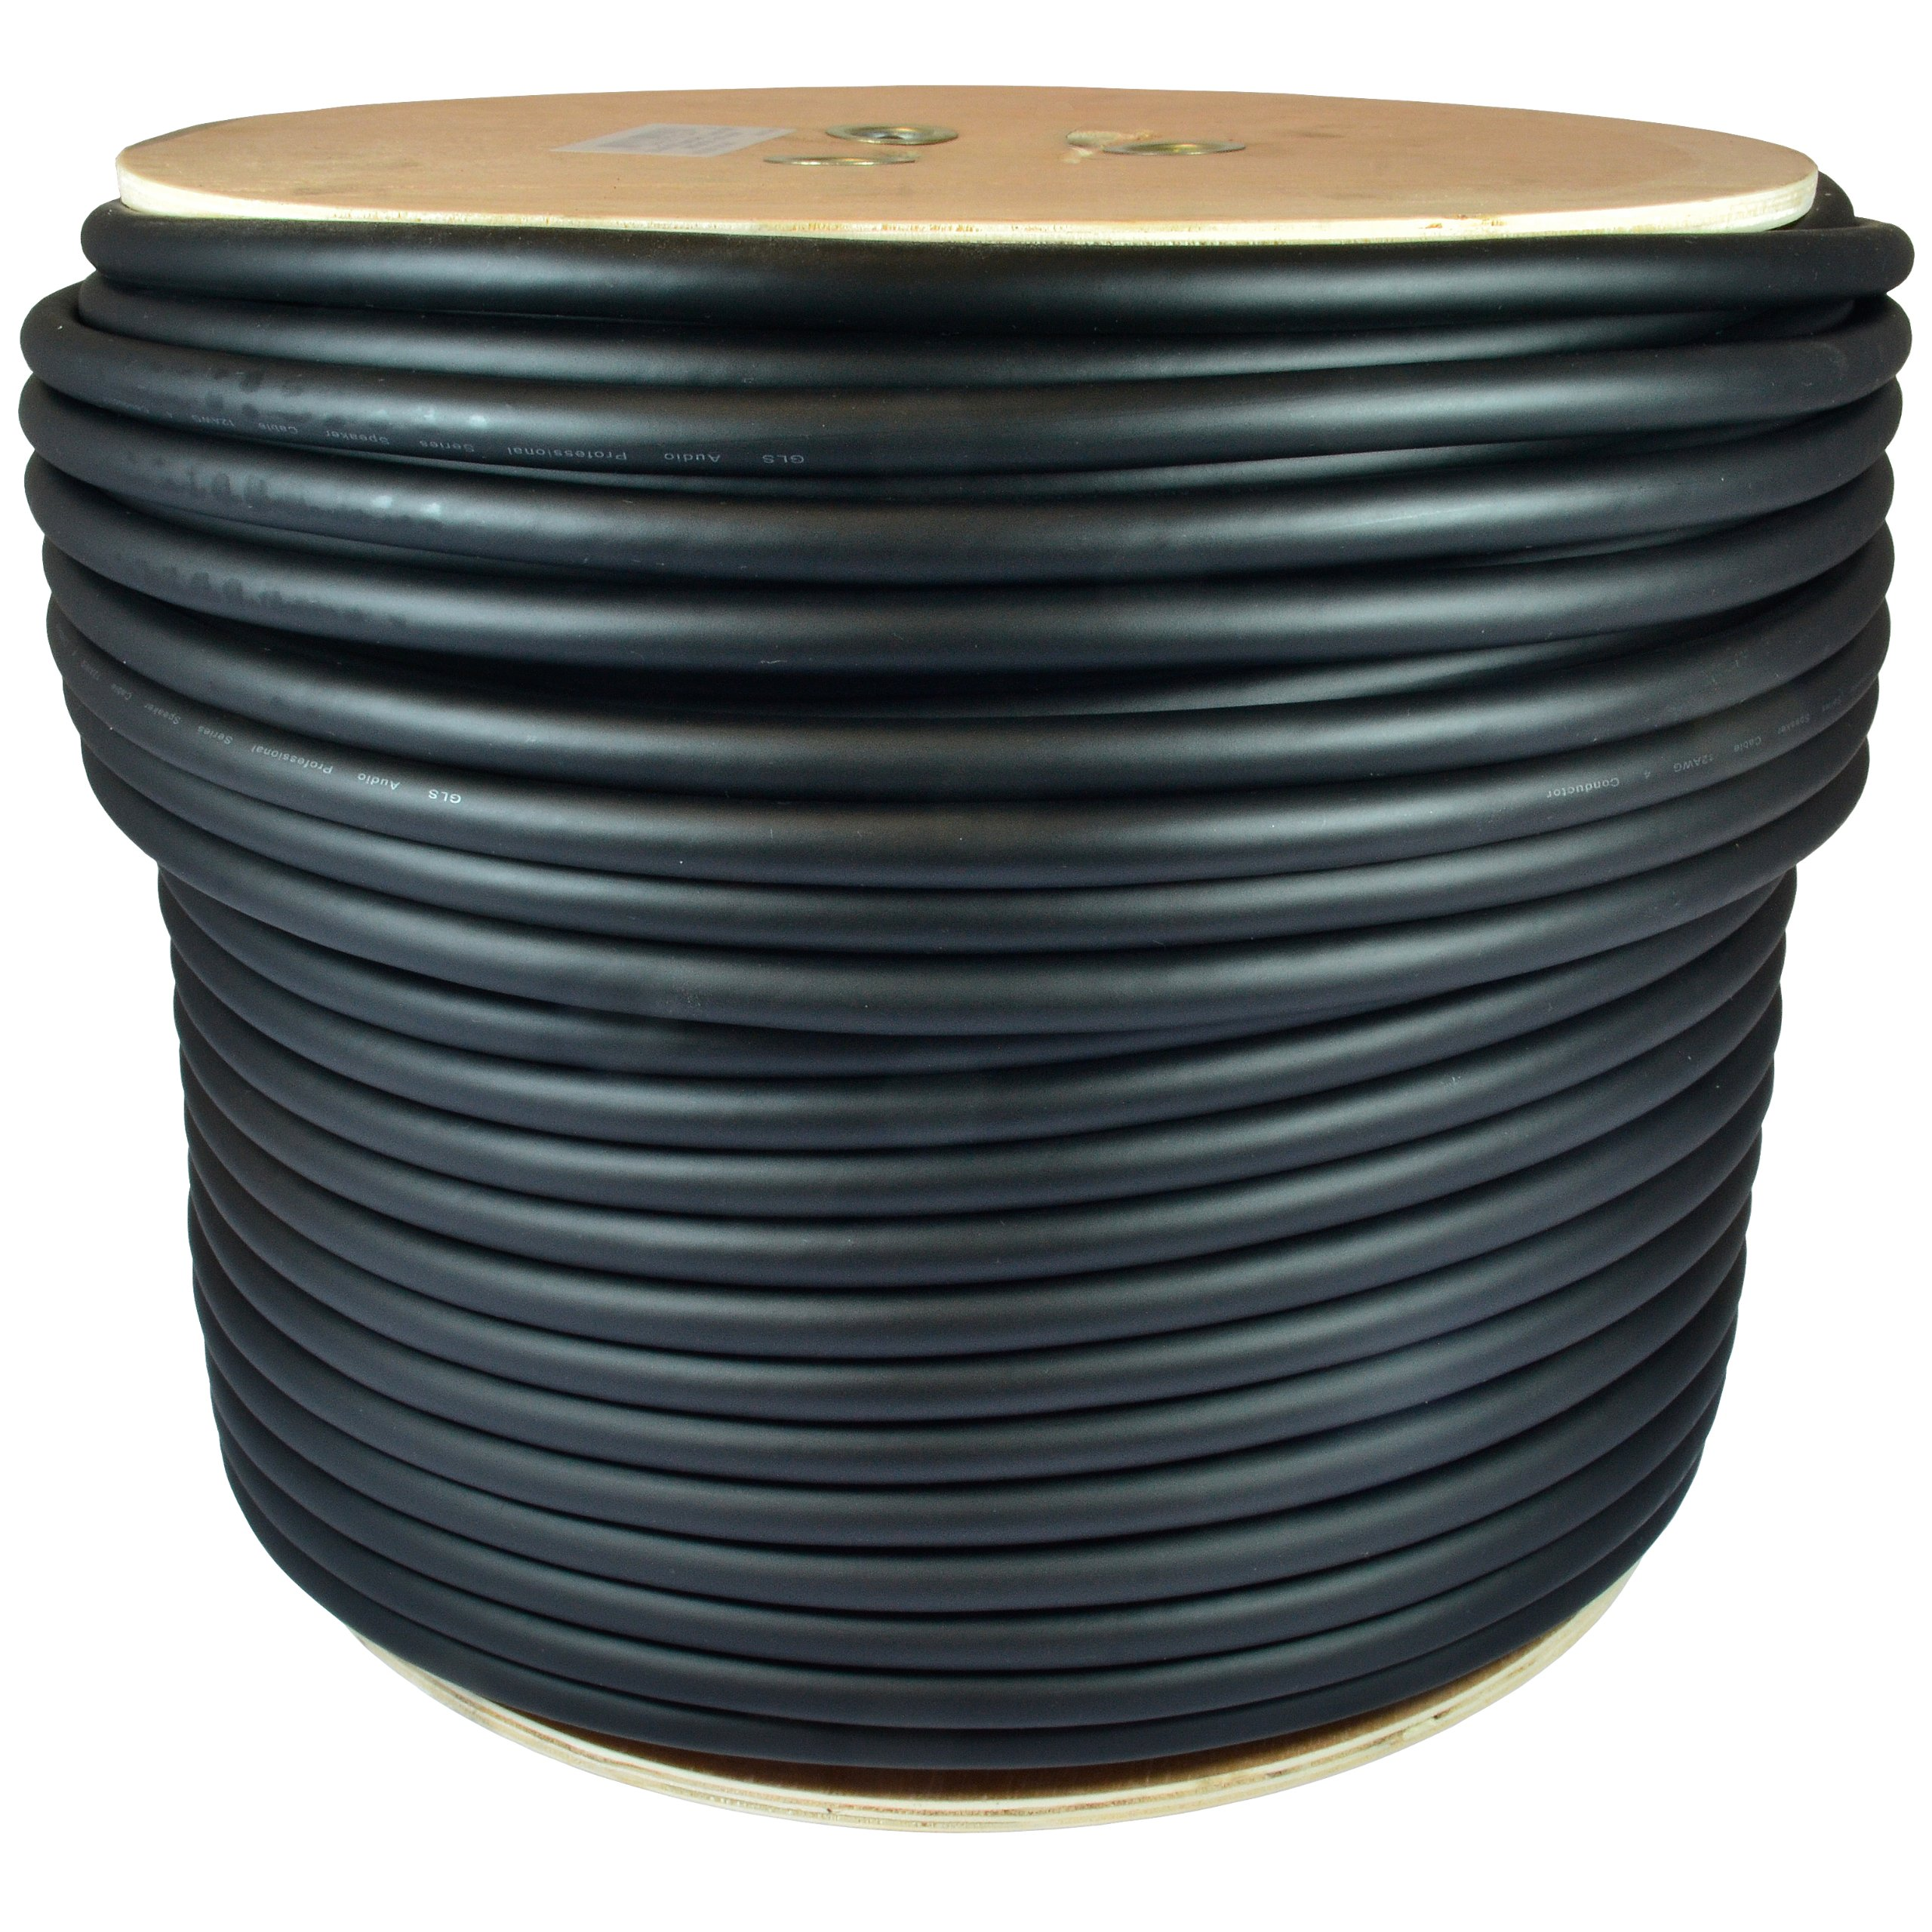 GLS Audio 500 feet Bulk Professional Speaker Cable 12AWG 4 Conductor Black - 12 Gauge Patch Cord 12/4 Wire - Pro 500' Spool Roll 12G 4 Cond Bulk by GLS Audio